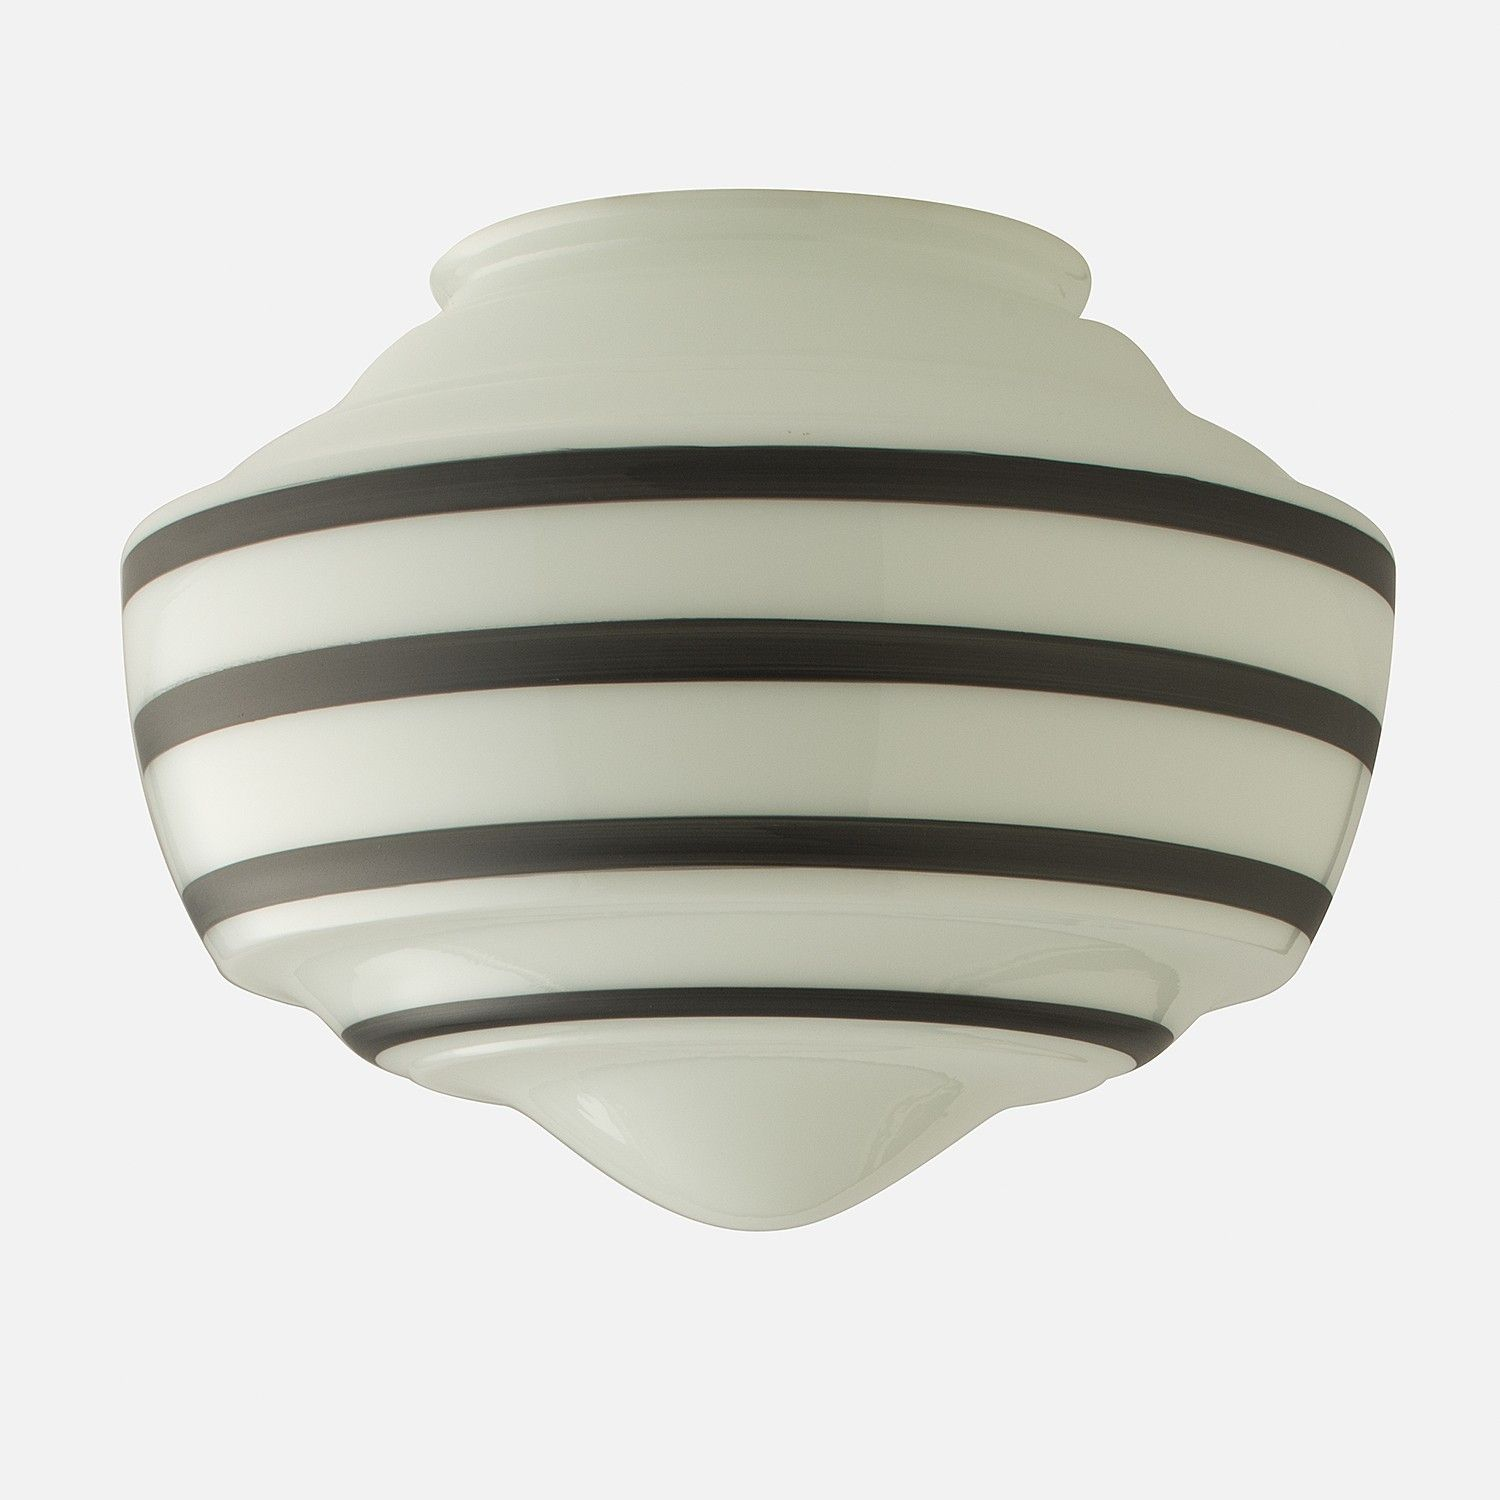 Perhaps replacing the current pendant shades with these ... on Wall Sconce Replacement Parts id=23817